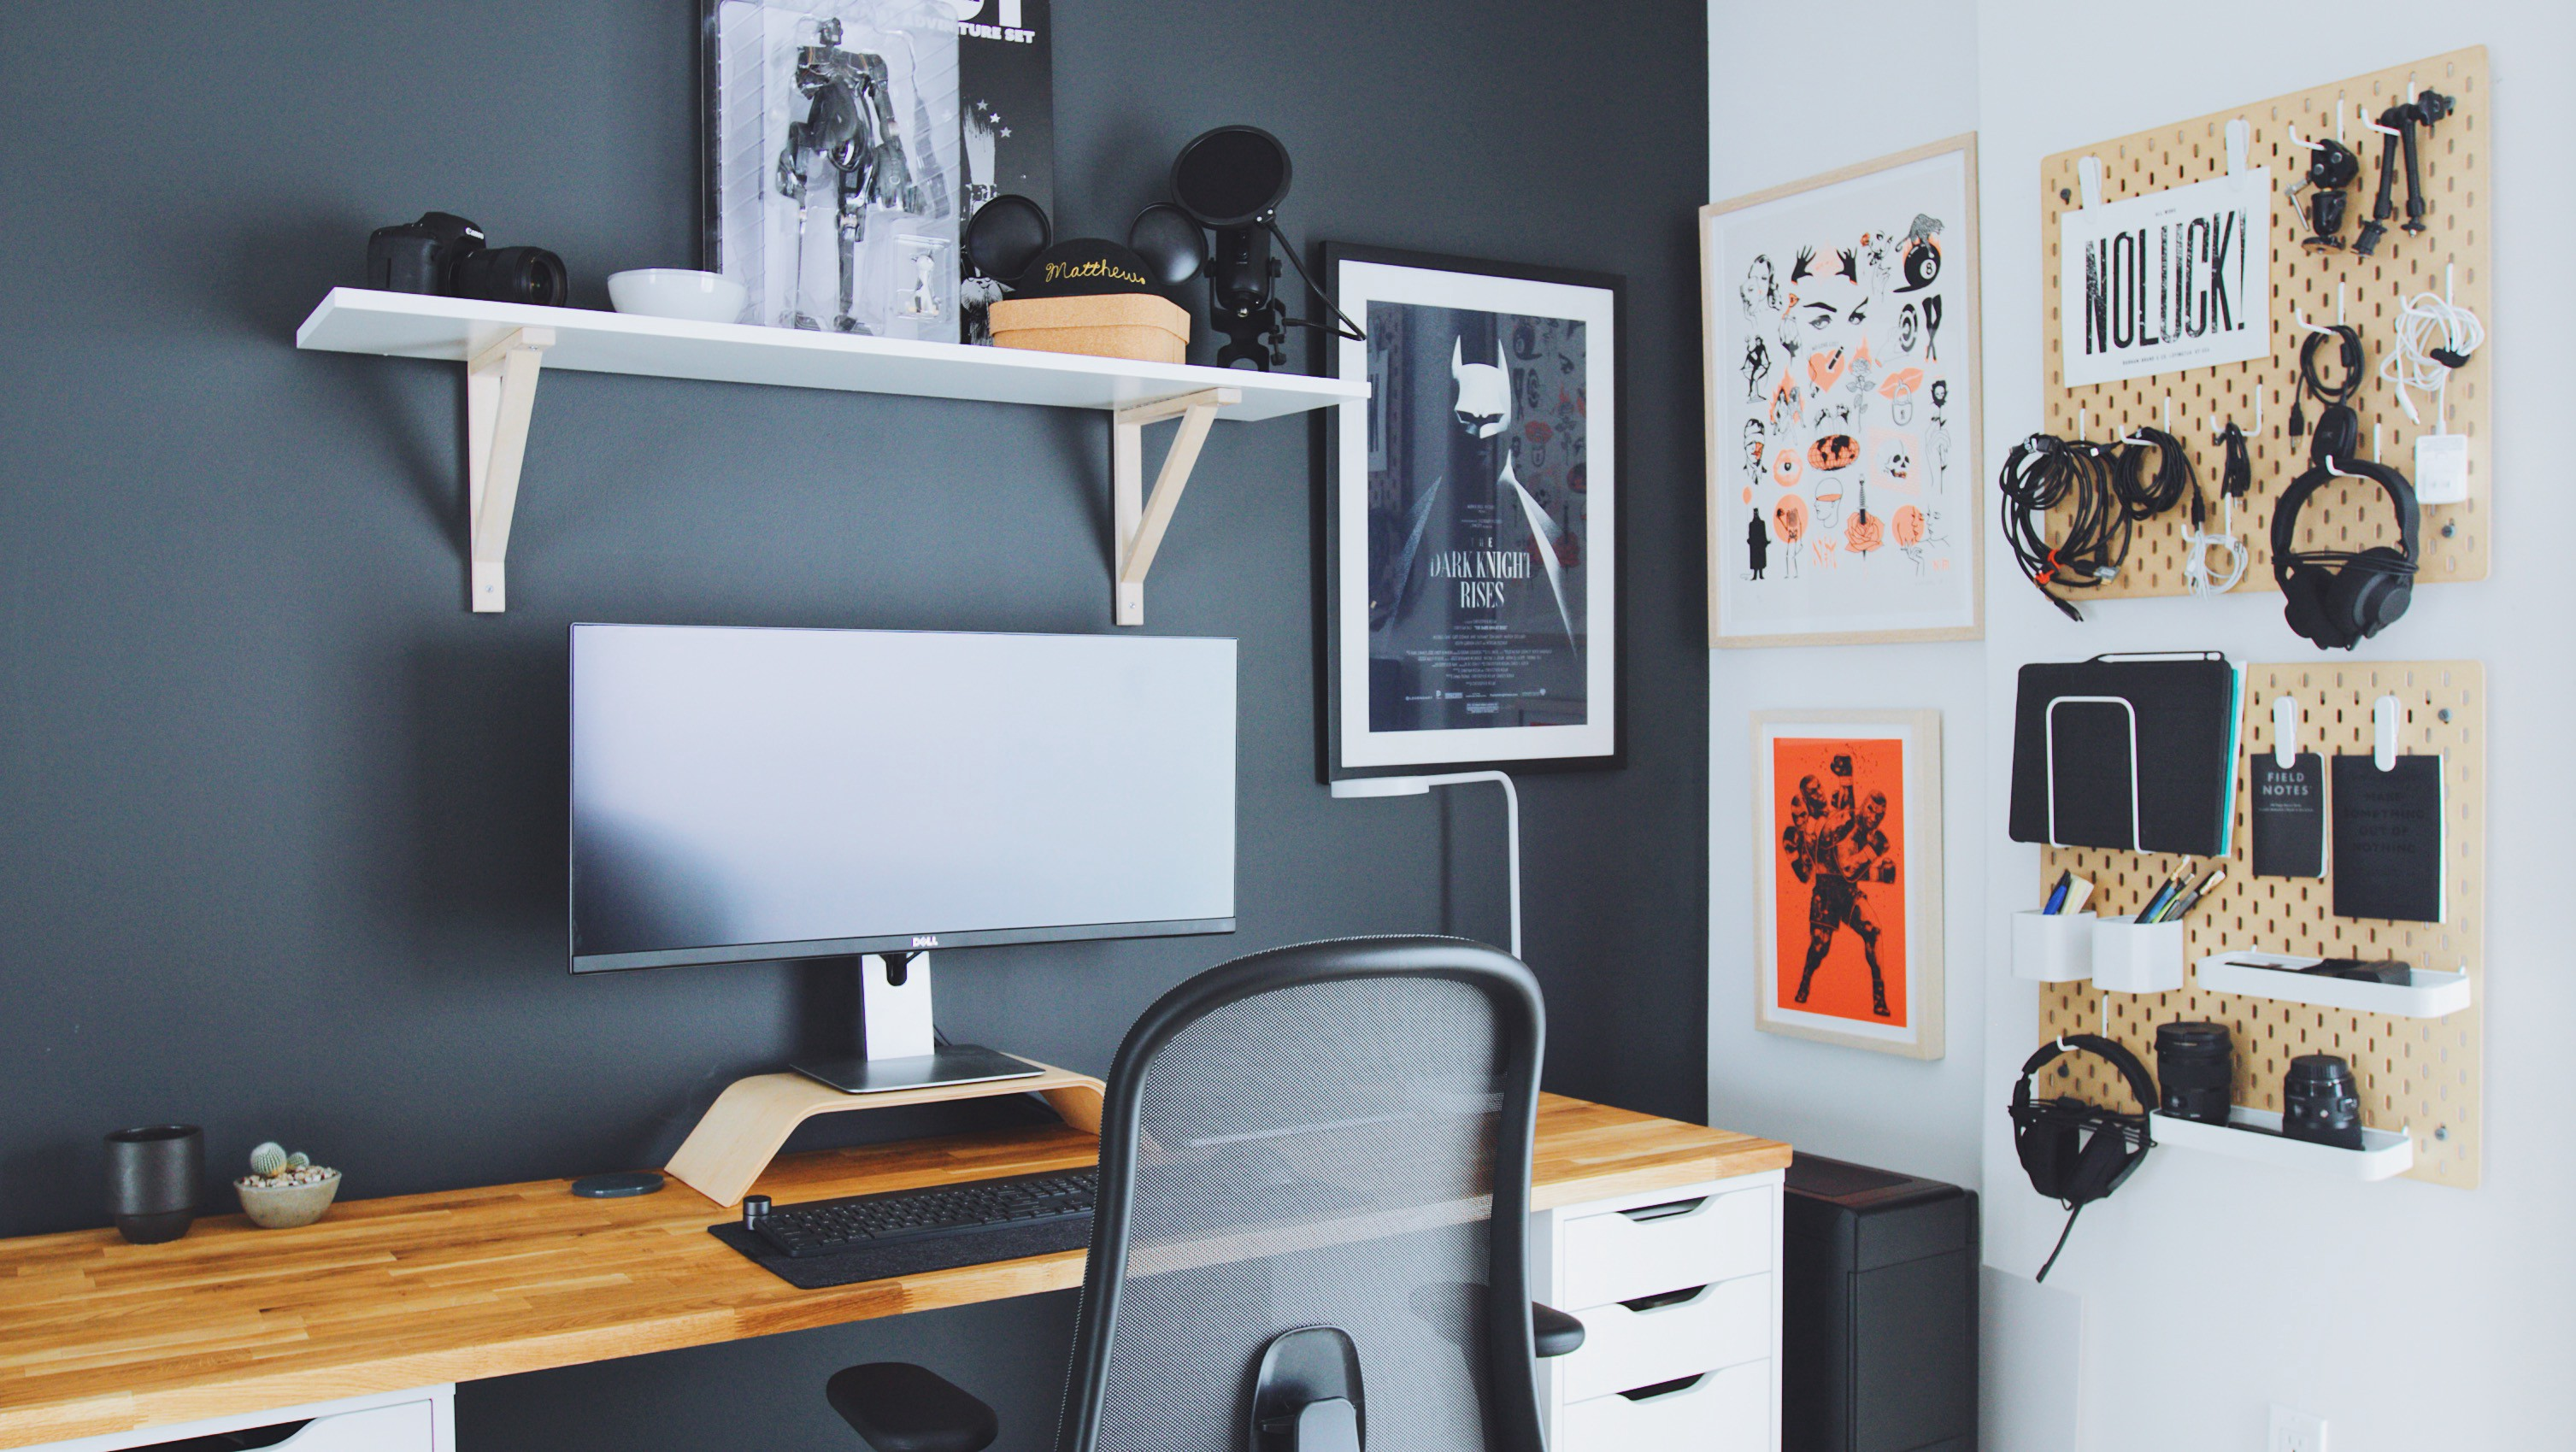 5 Tips To Organize Your Workspace And Reclaim Your